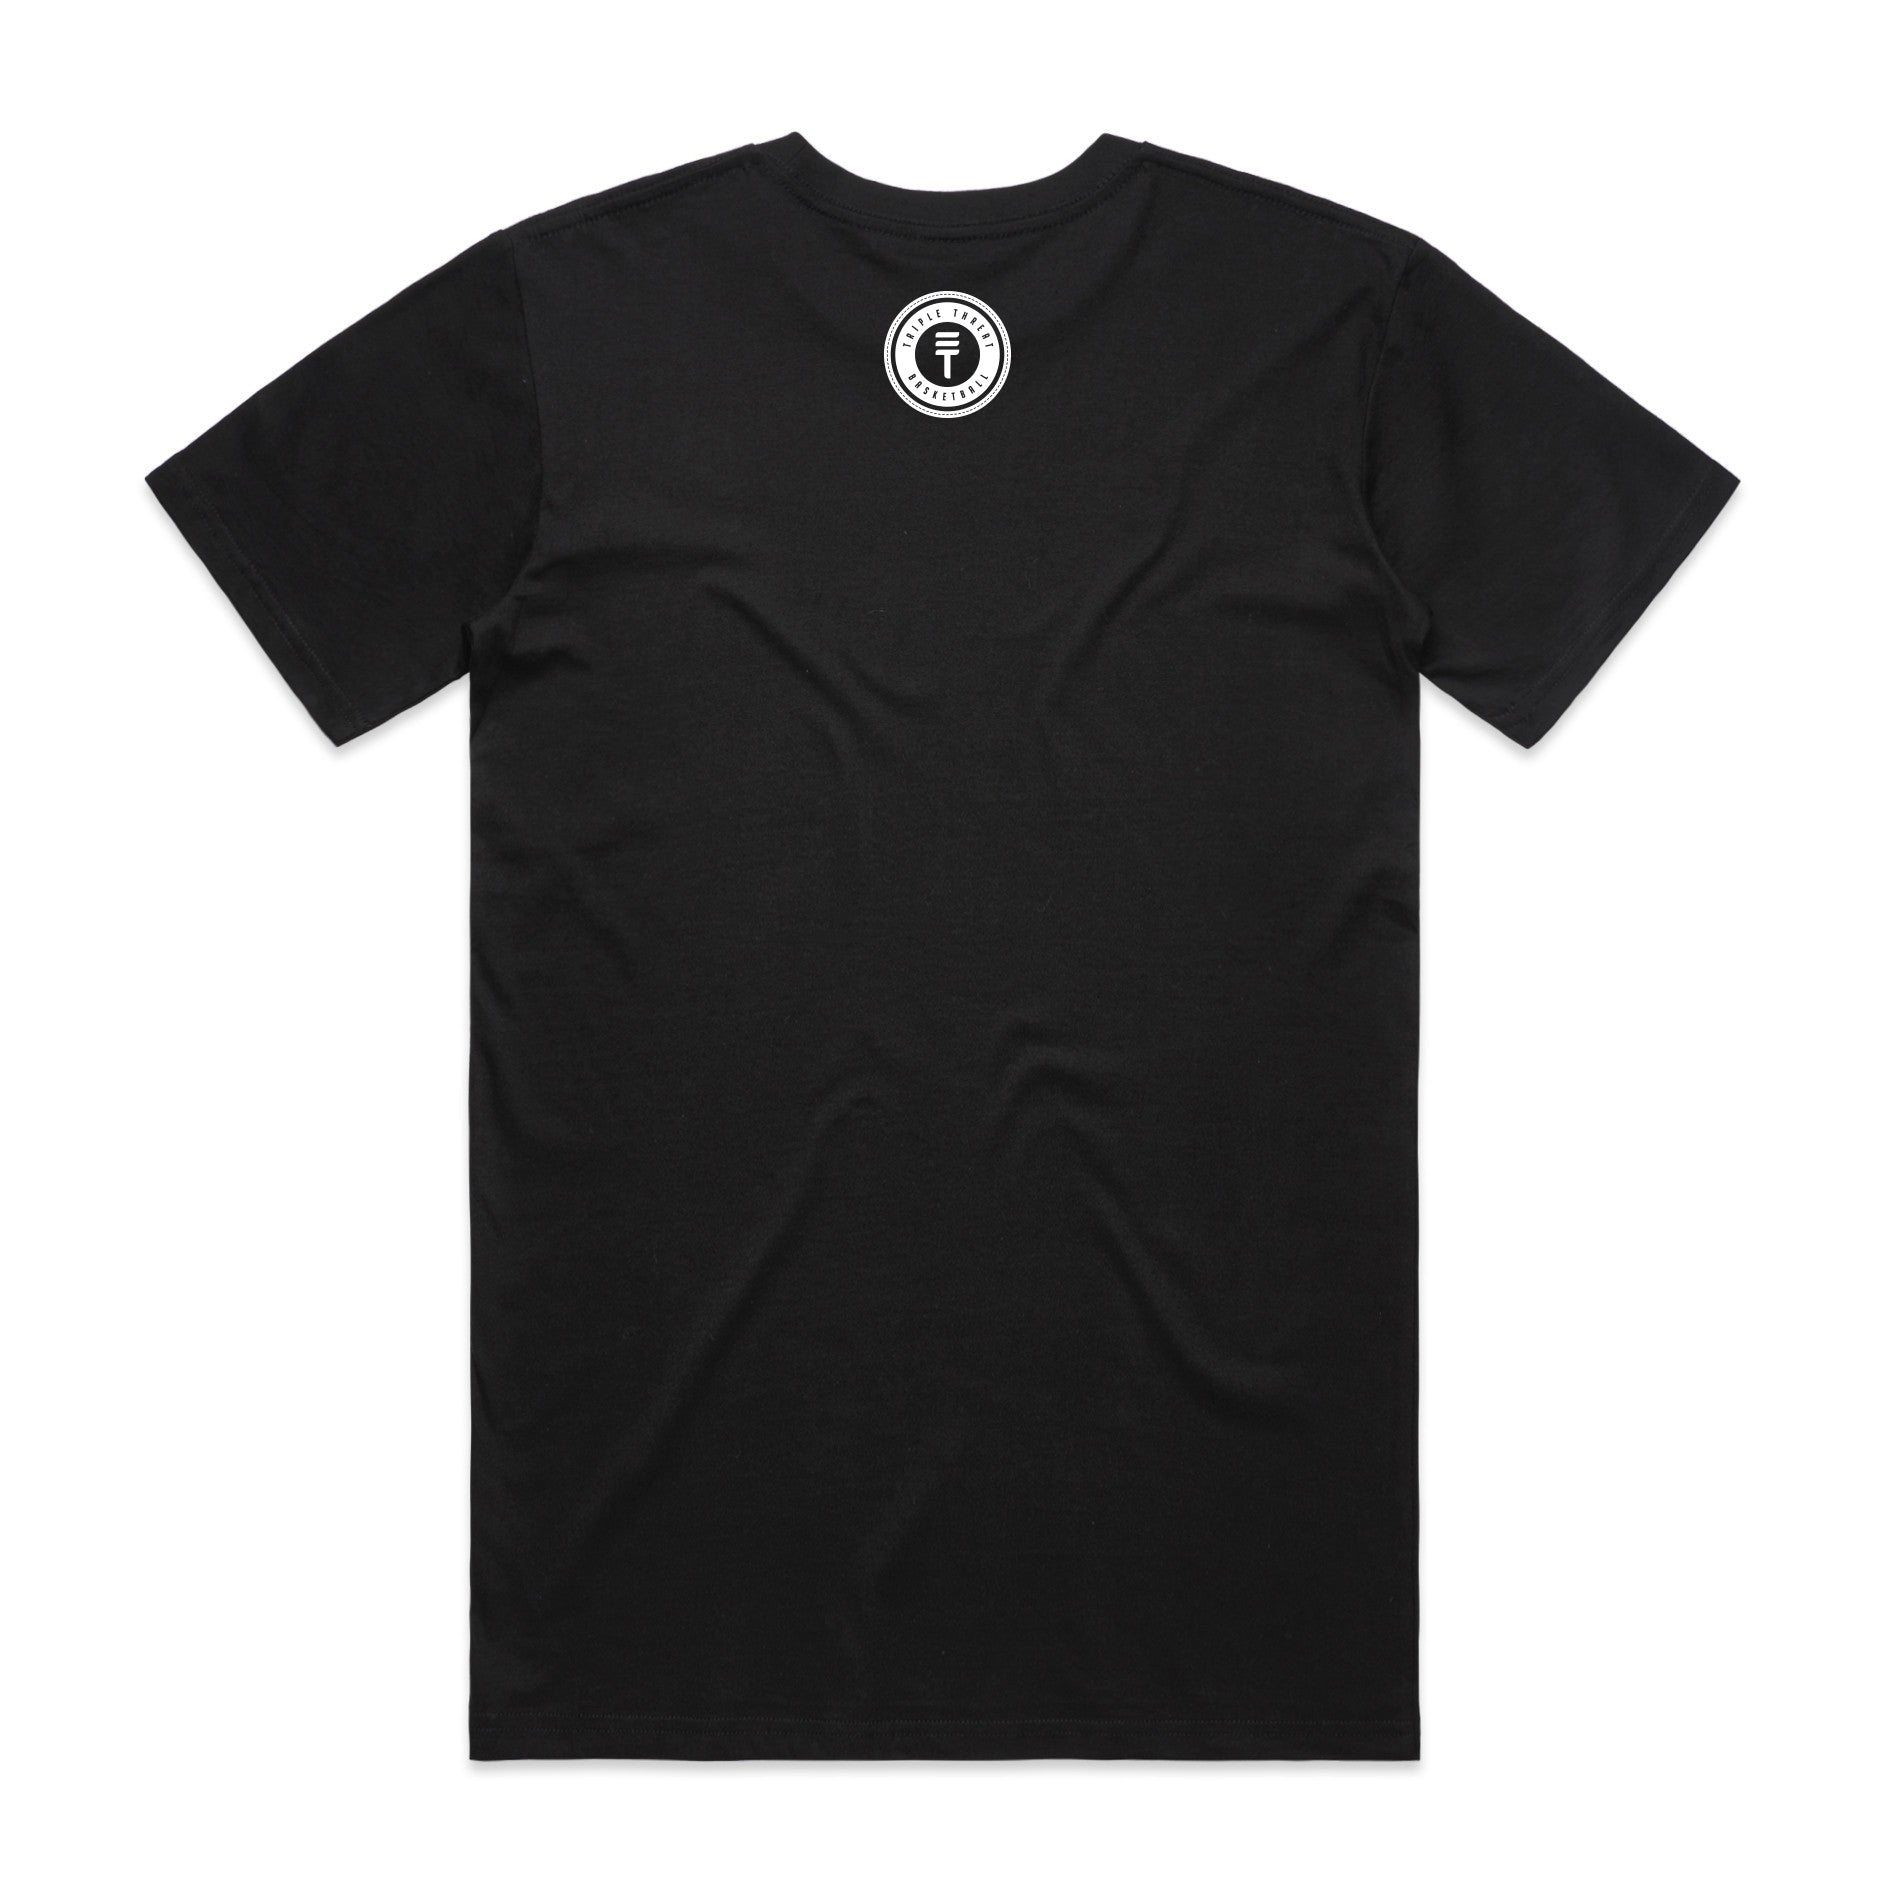 SCHOOLYARD T-SHIRT - BLACK